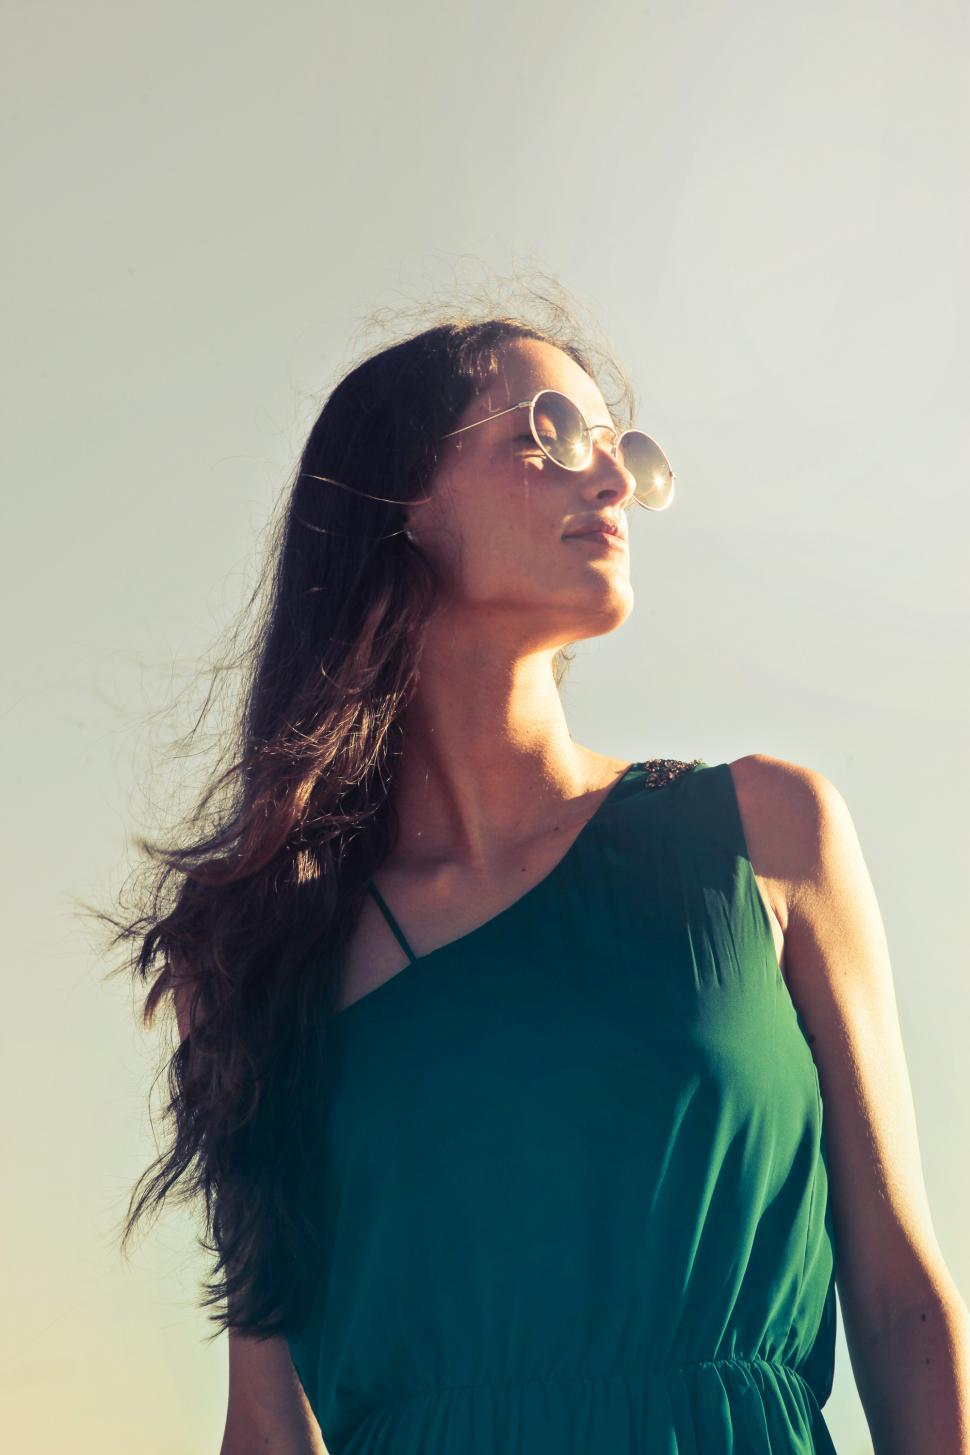 Download Free Stock HD Photo of A young brunette woman with glasses looks towards the sun Online